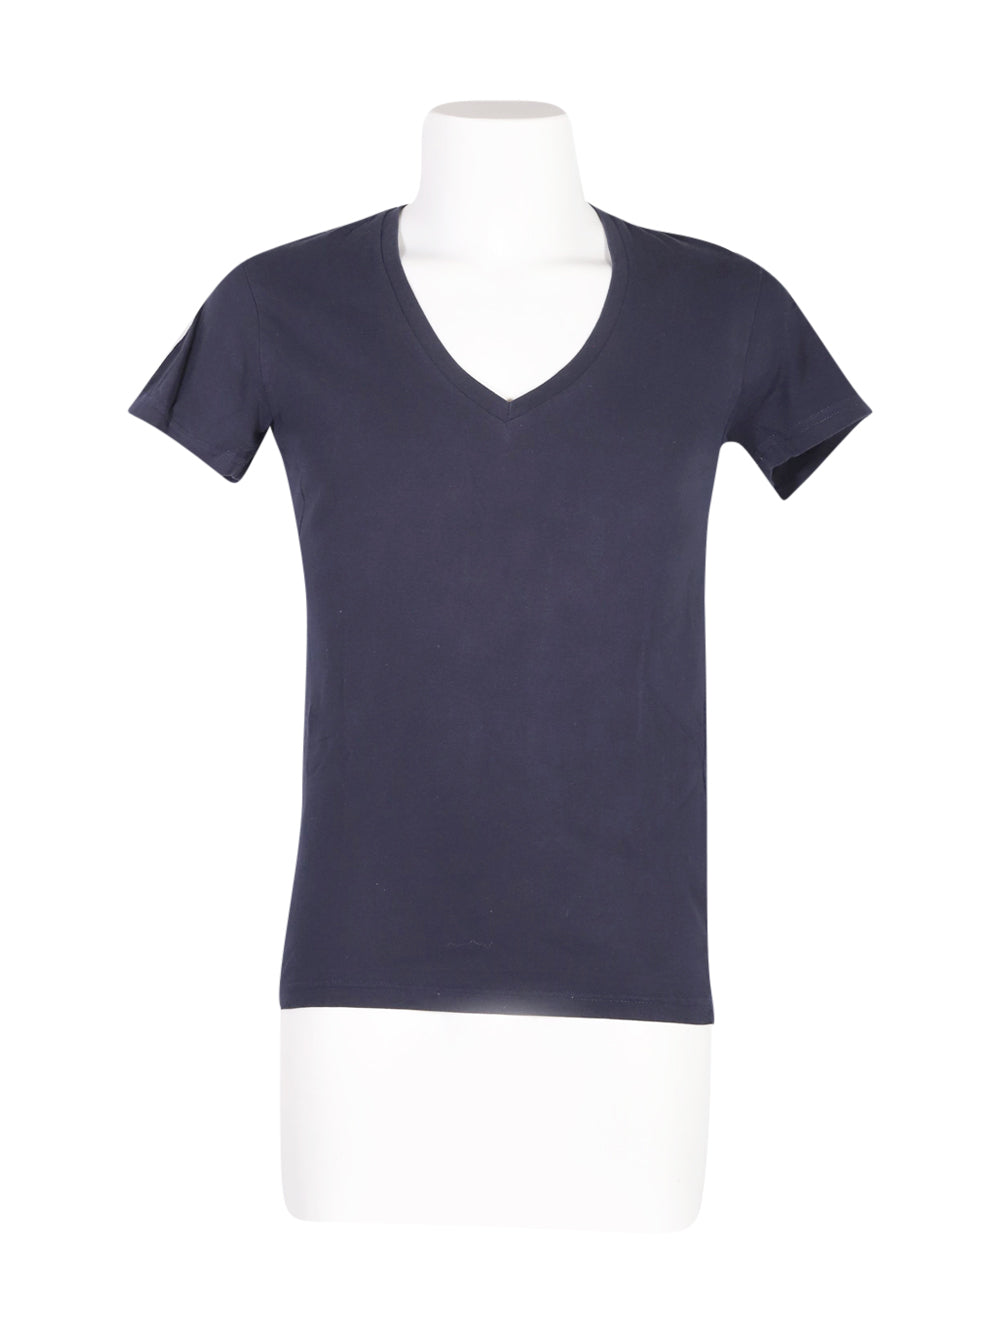 Front photo of Preloved Zara Blue Man's t-shirt - size 38/M